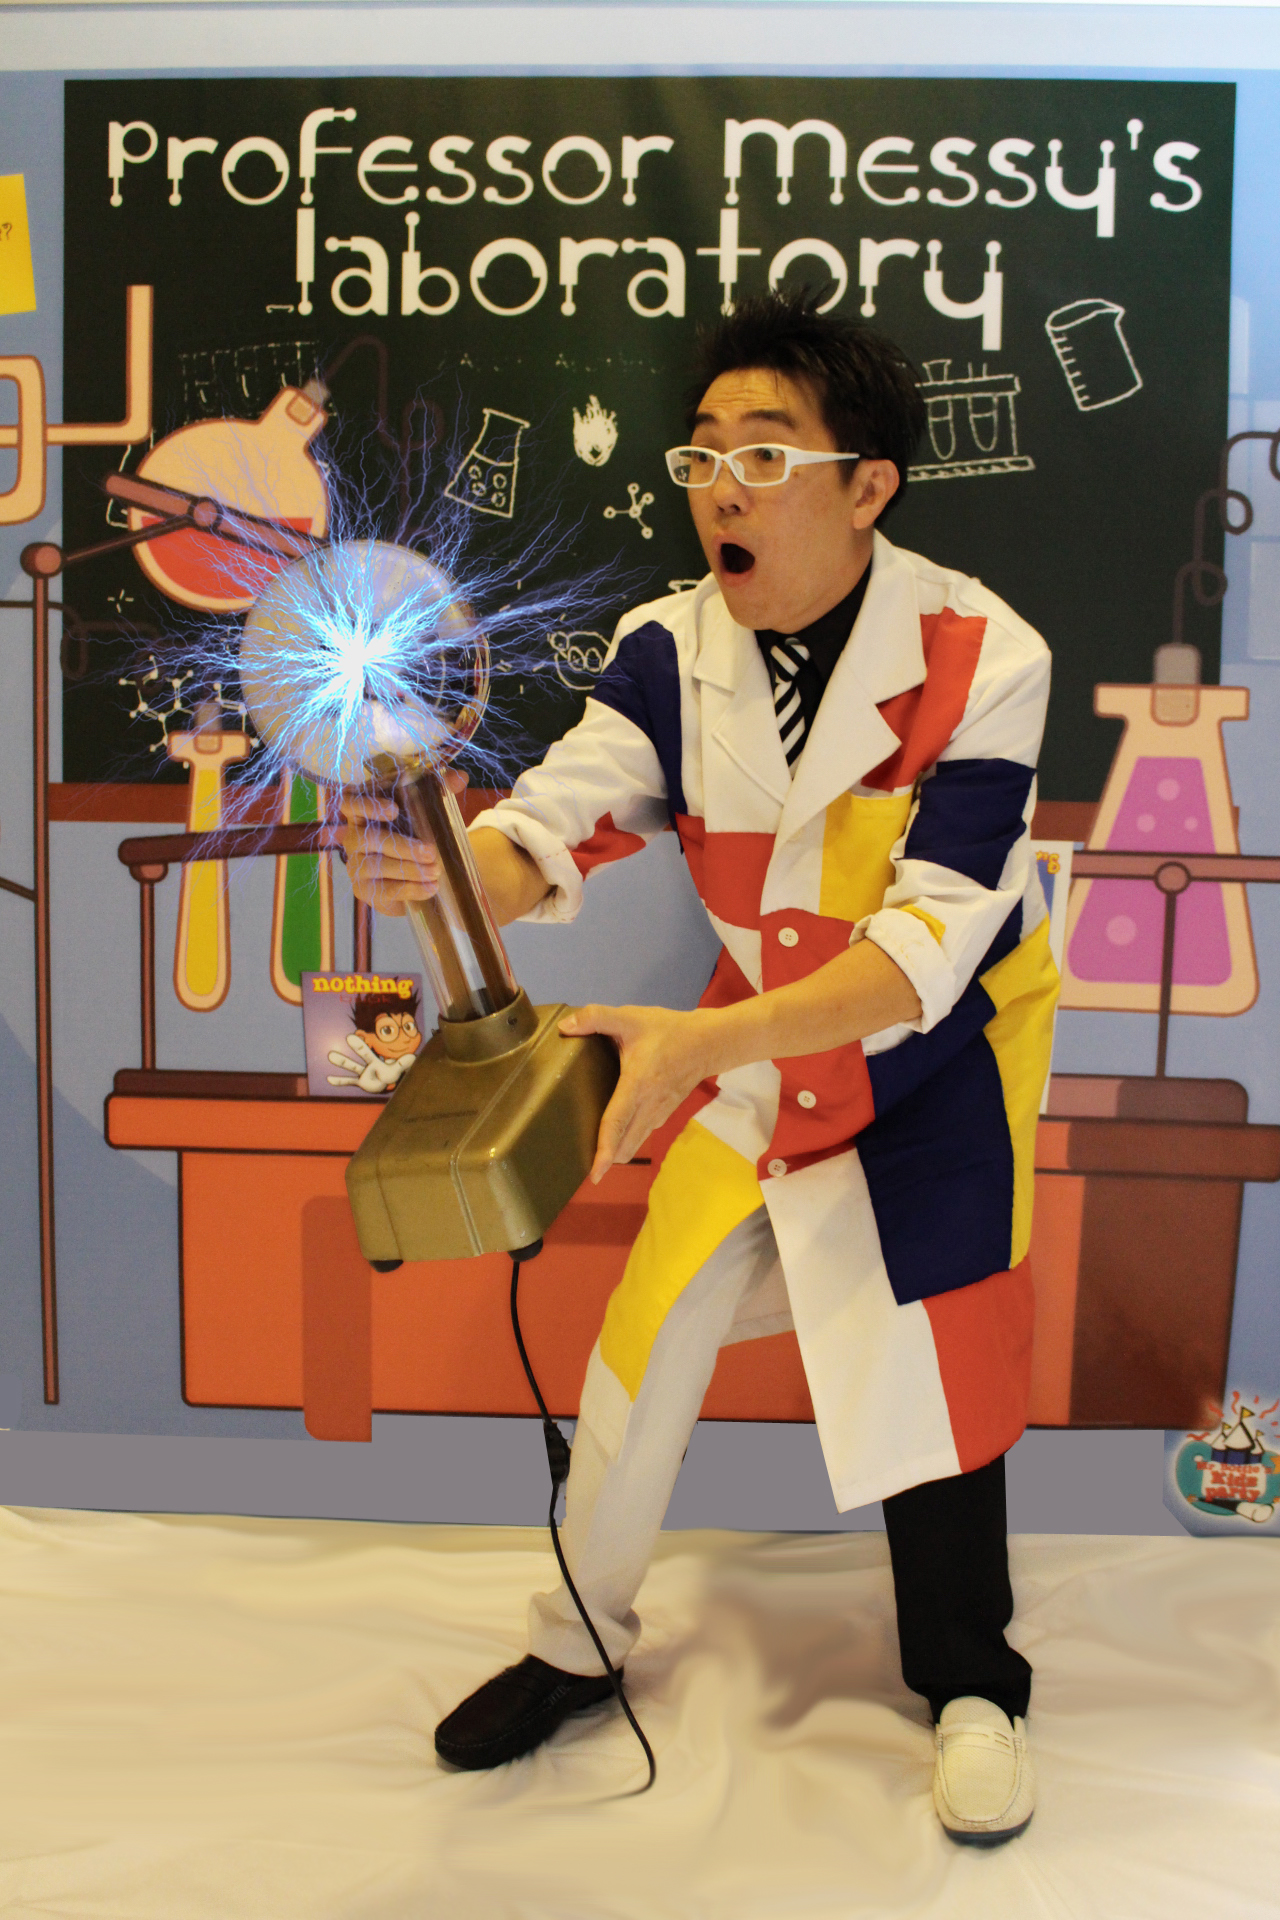 Case Study: Science Theme Event for Bring Your Kids at Work